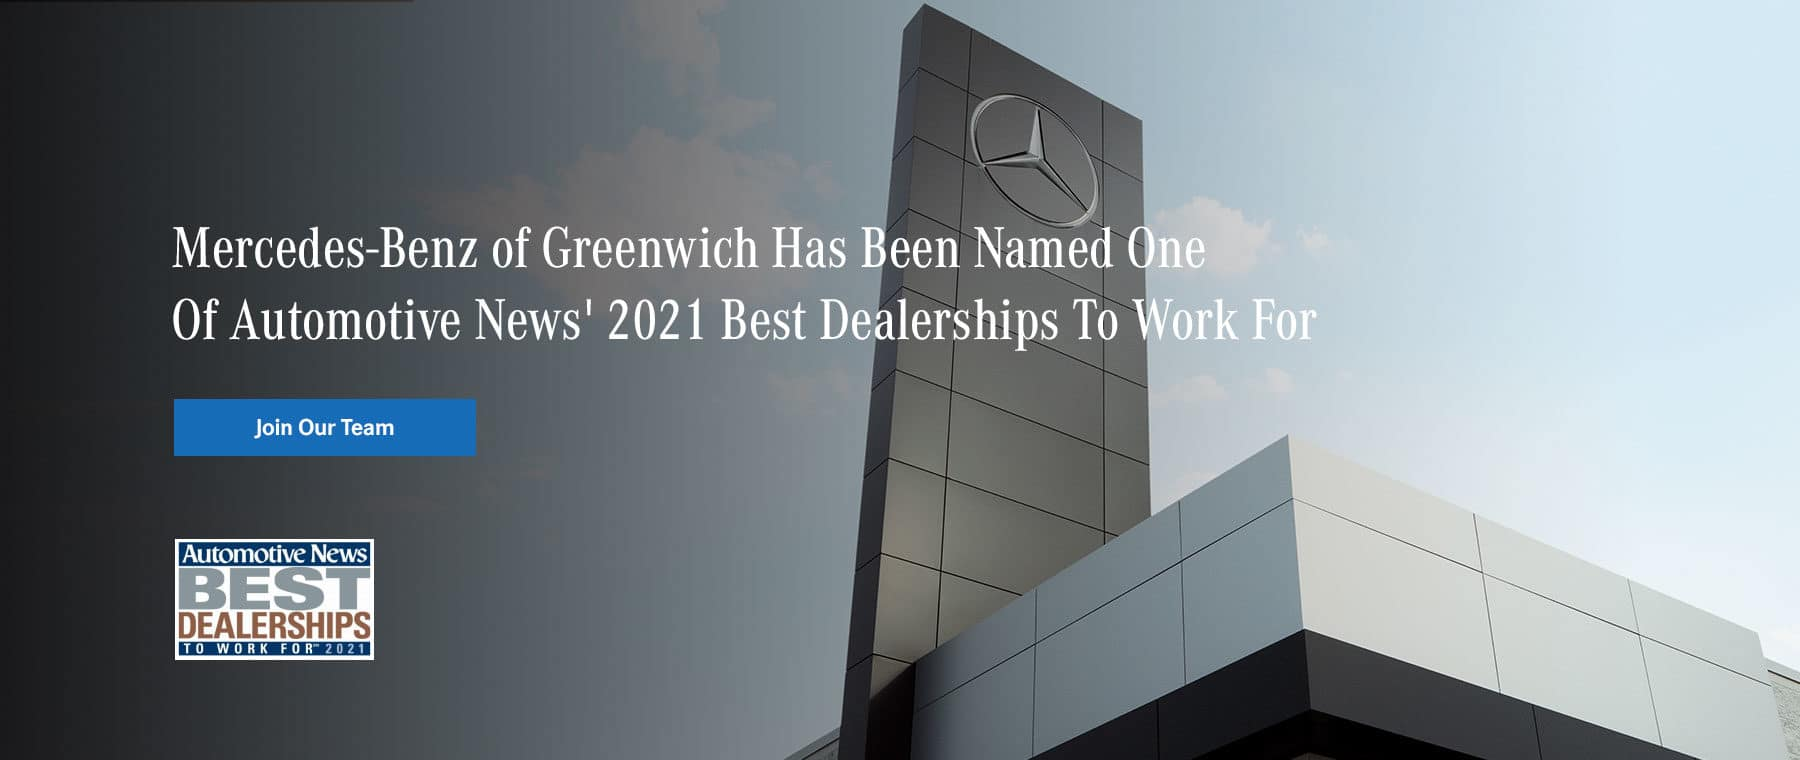 Mercedes-Benz Greenwich has been named one of automotive news' 2021 best dealerships to work for!